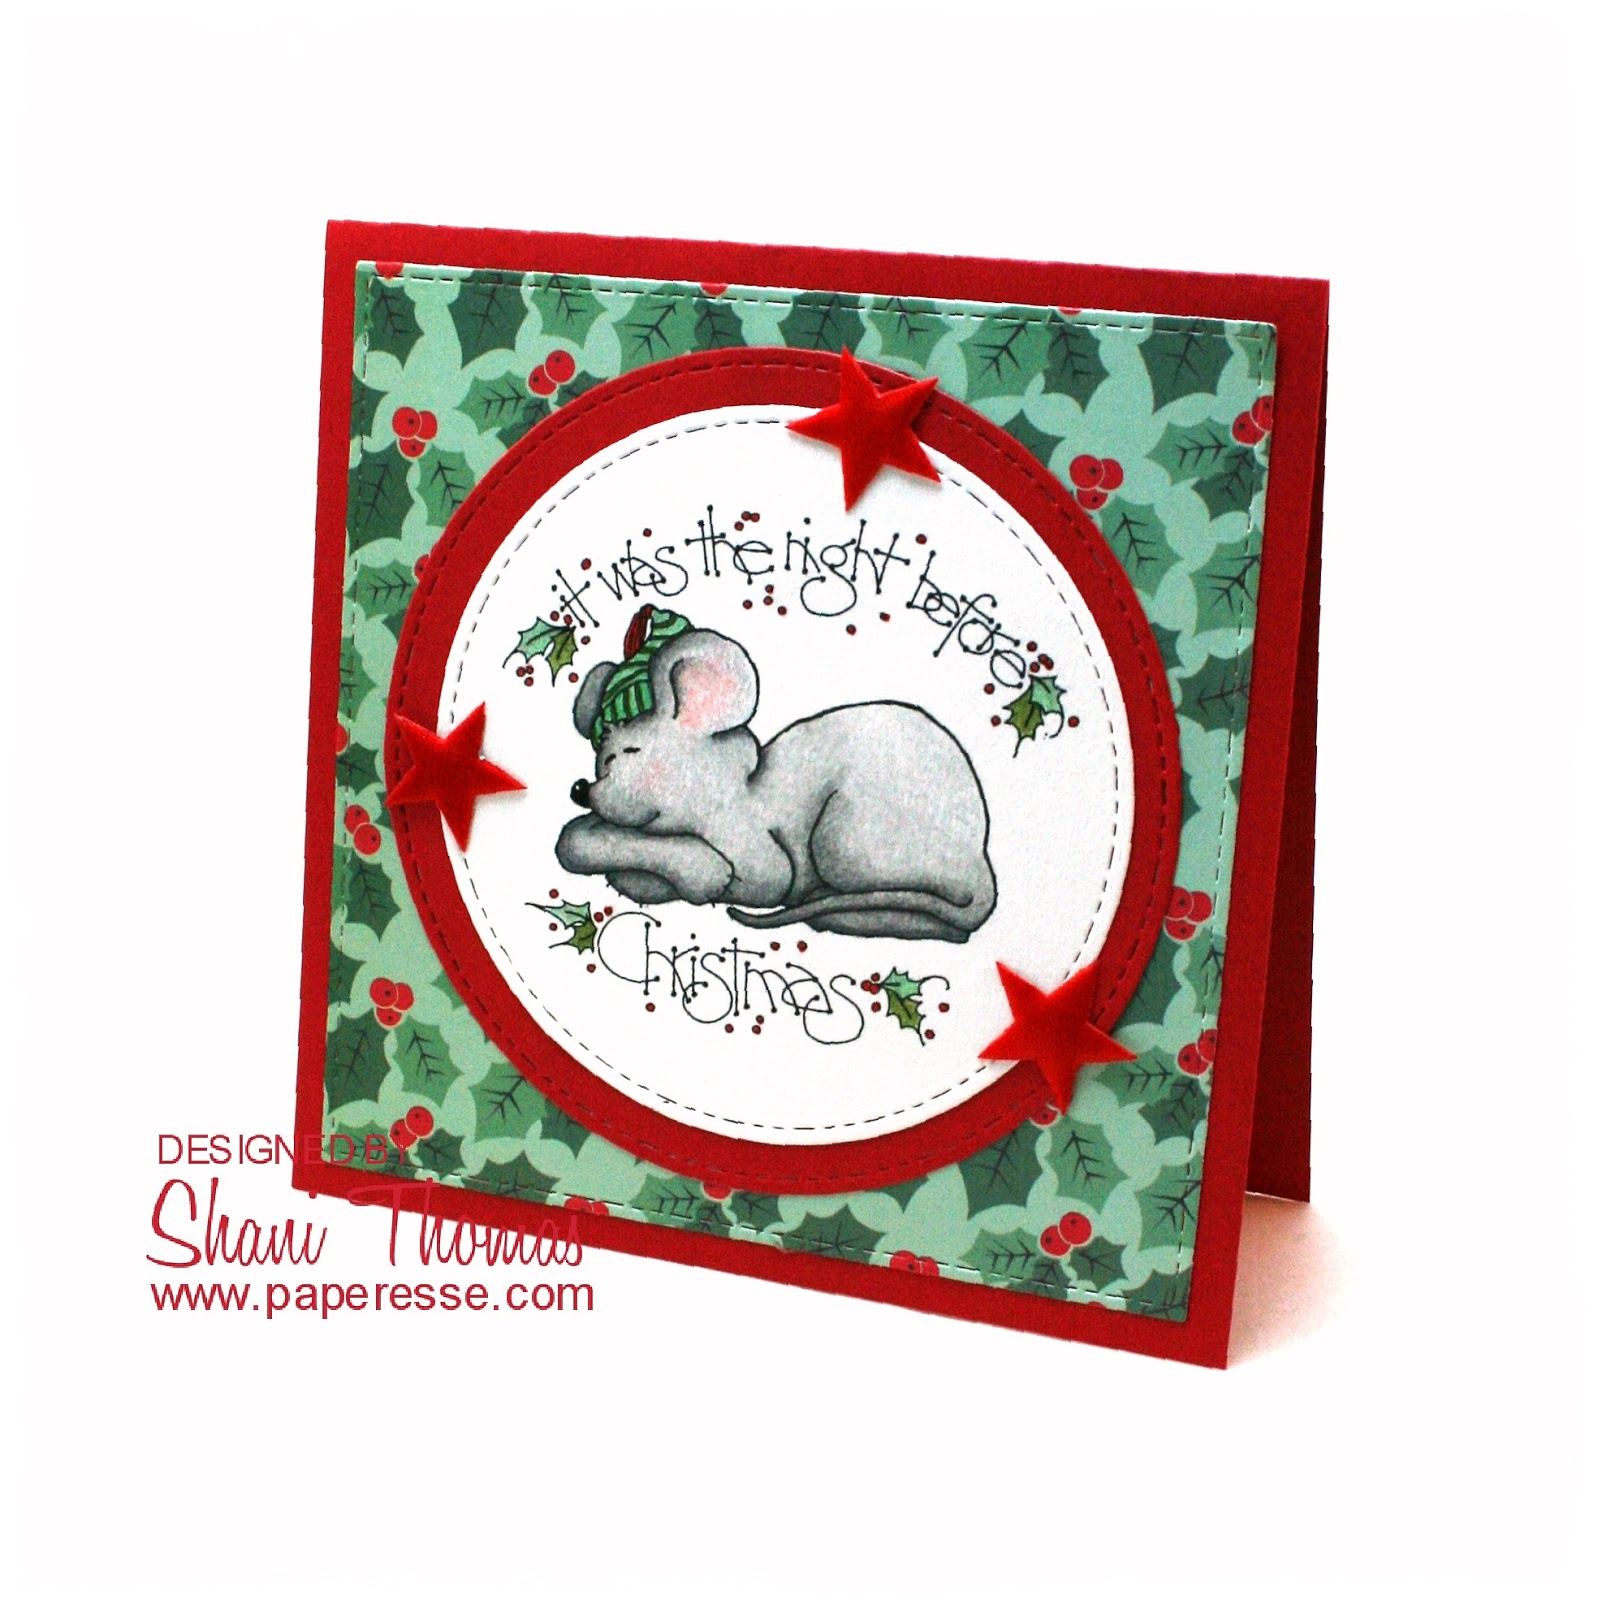 Christmas Stamps 2019.Paperesse Christmas Card Featuring Eureka Stamps The Night